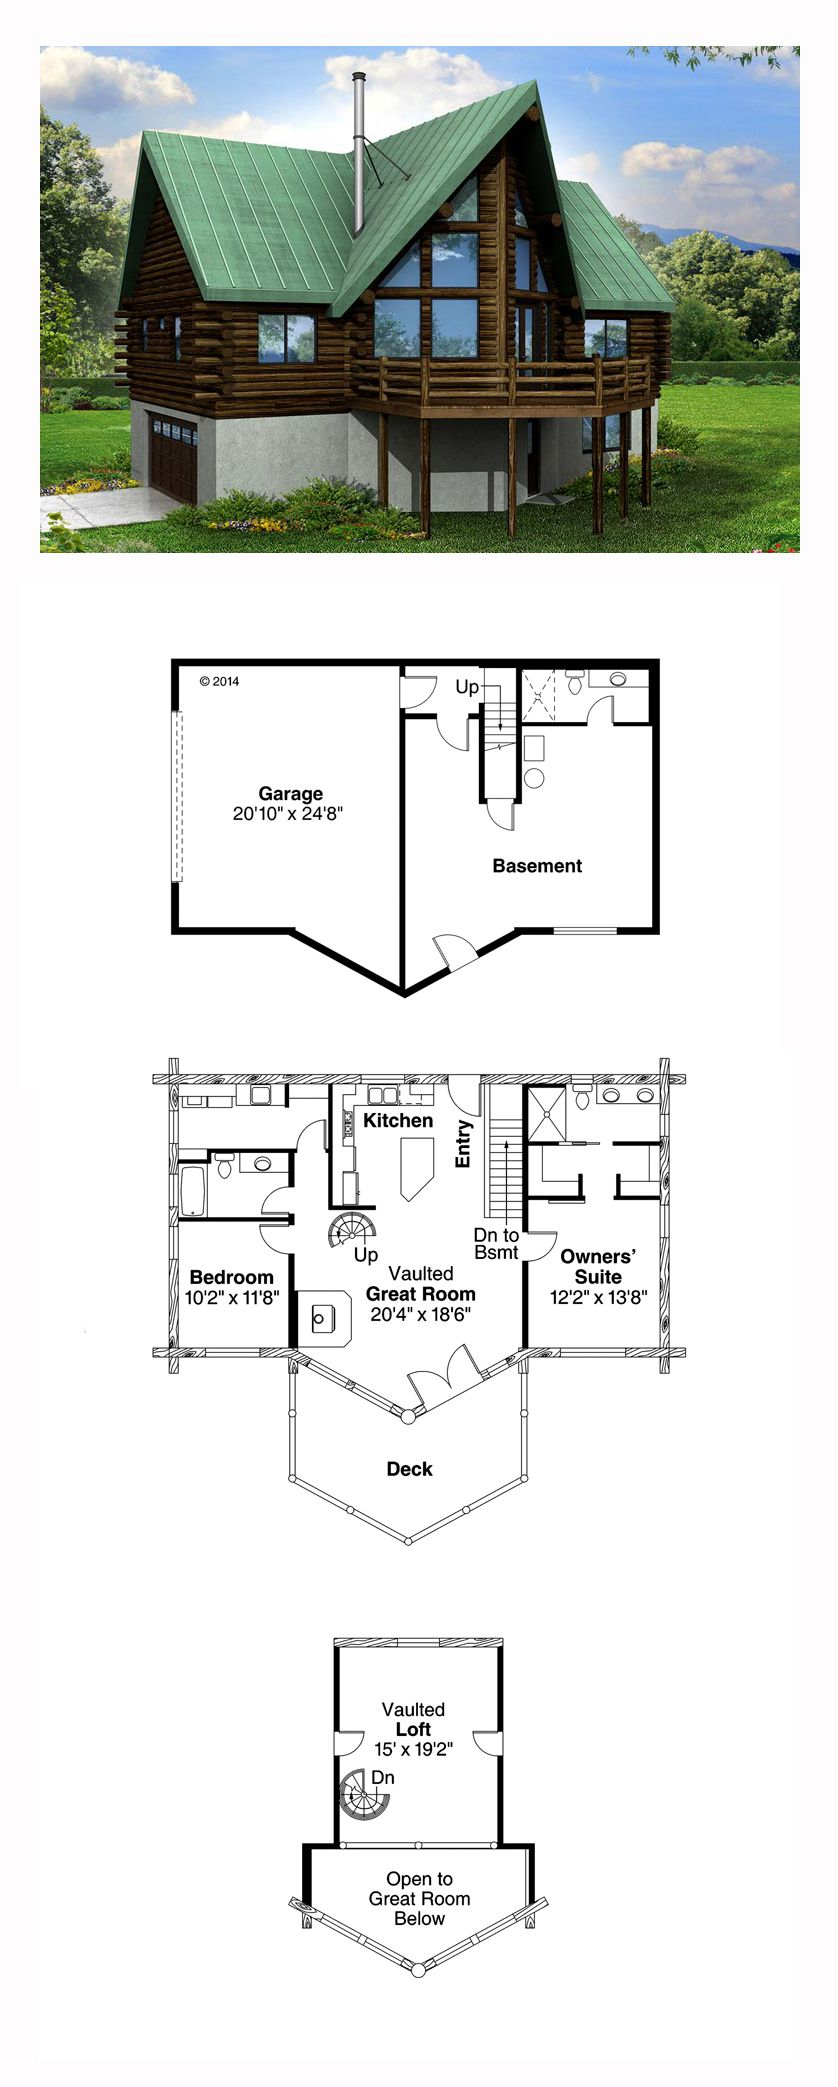 Cottage Style House Plan 41165 With 2 Bed 3 Bath 2 Car Garage House Plans Cottage Style House Plans House Blueprints